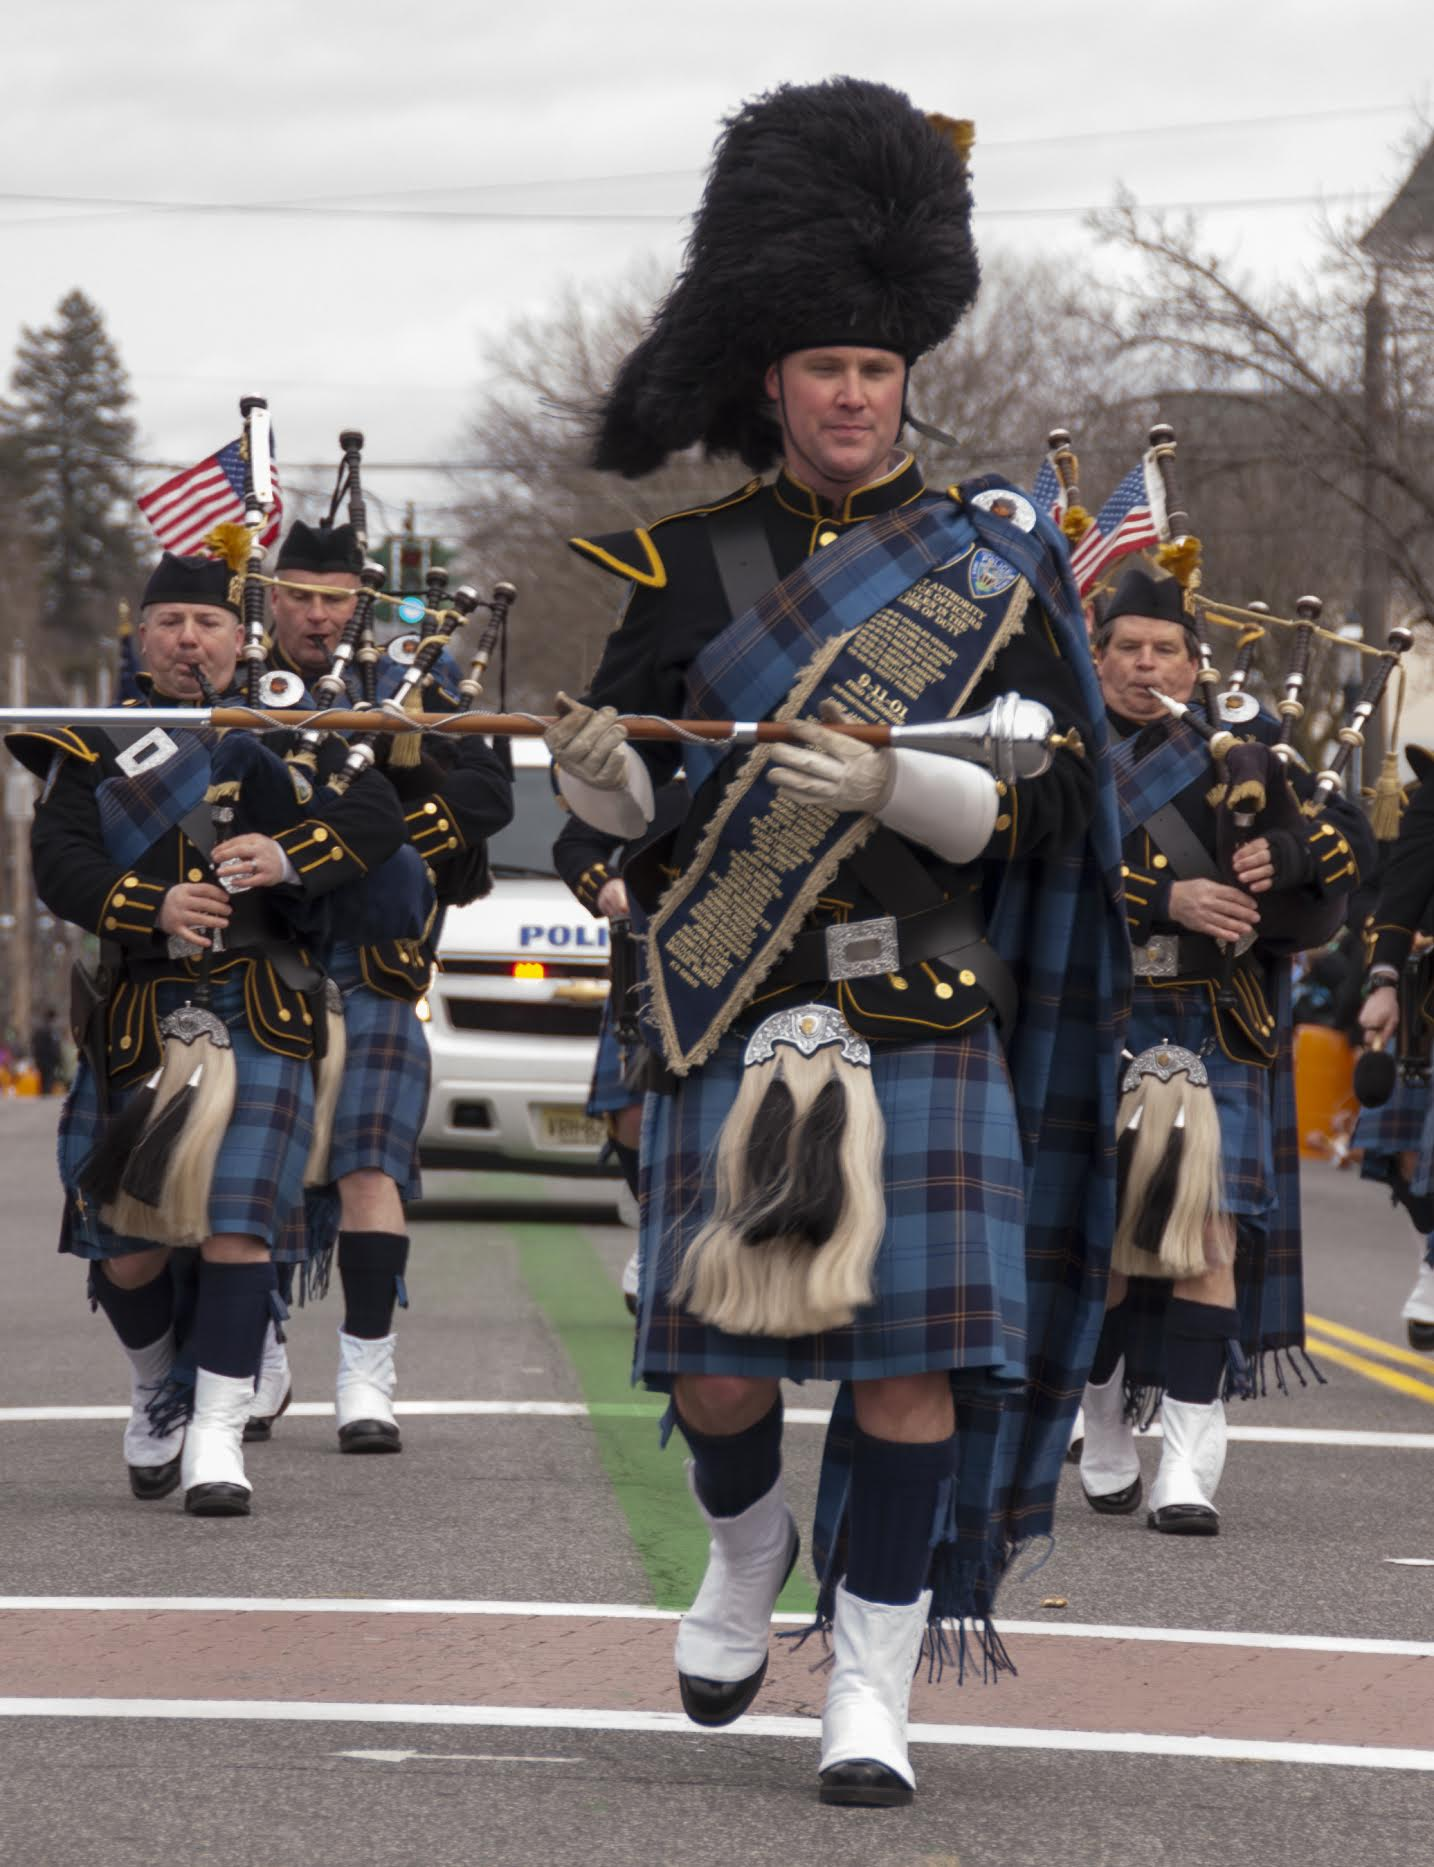 HAPPY ST. PATRICK'S DAY—ROCKLAND'S BIGGEST PARTY OF THE YEAR IS THIS WEEKEND